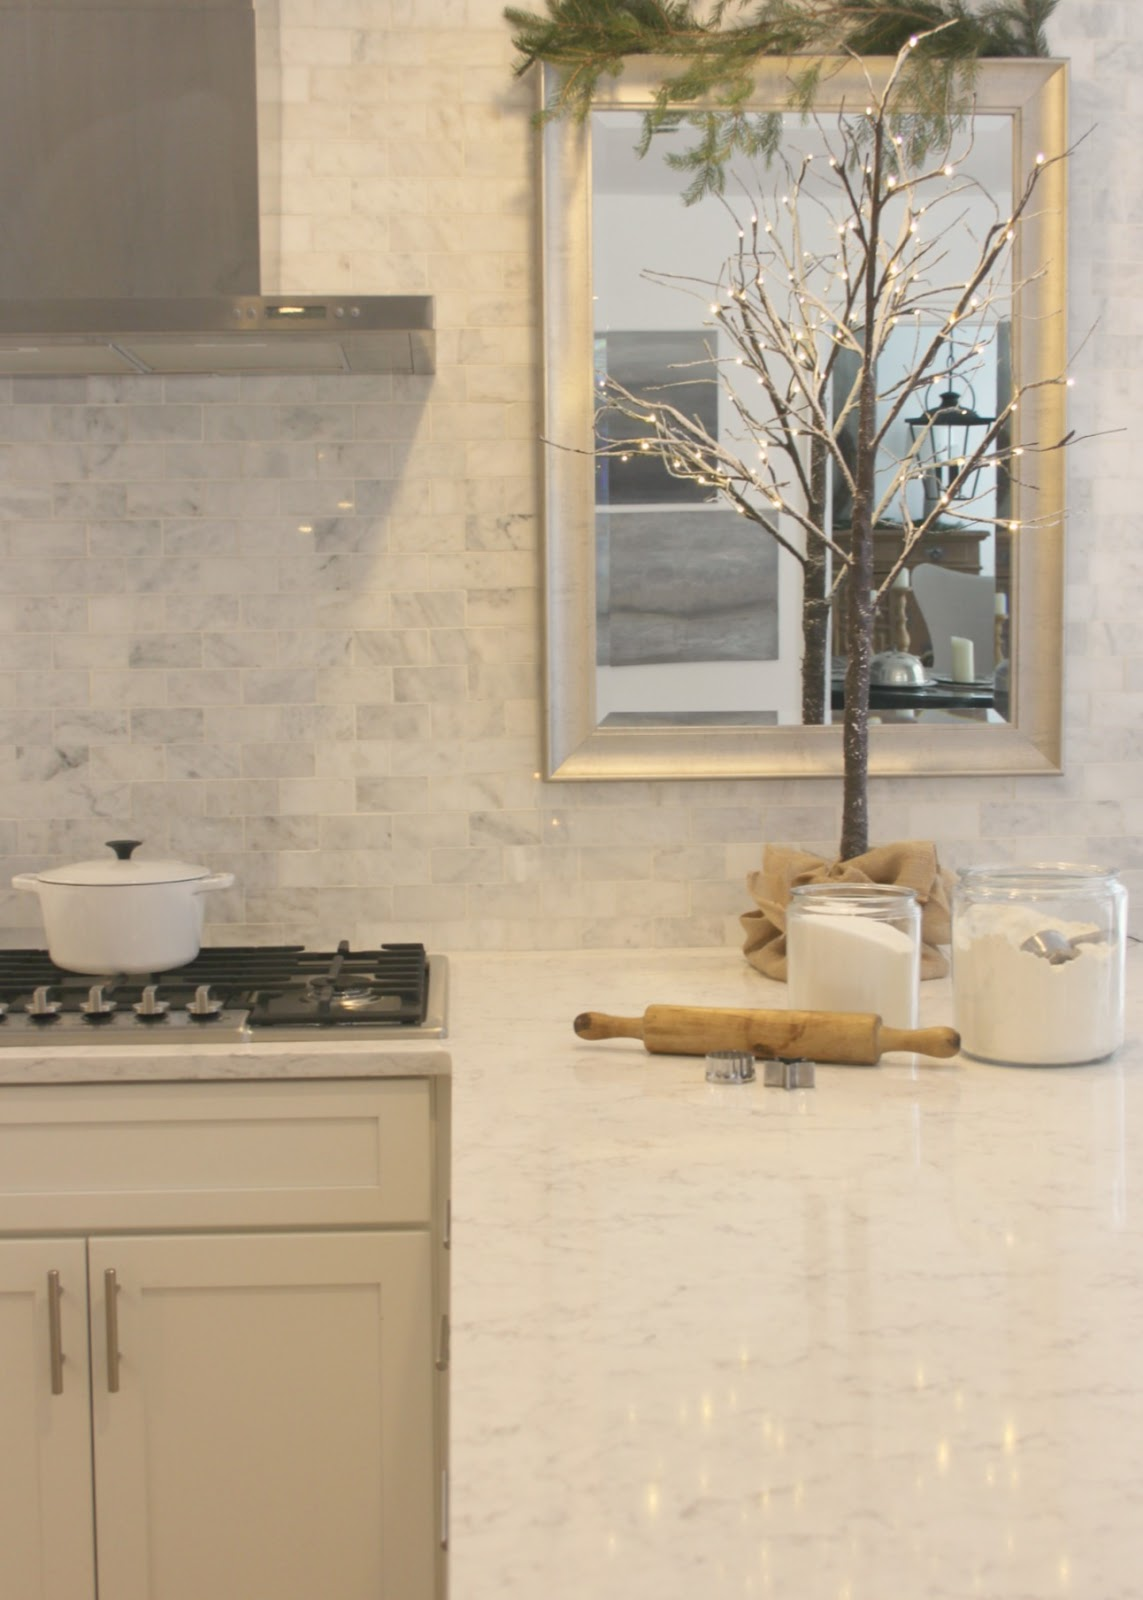 White kitchen with Minuet Viatera quartz countertop, mirror, and Christmas decor